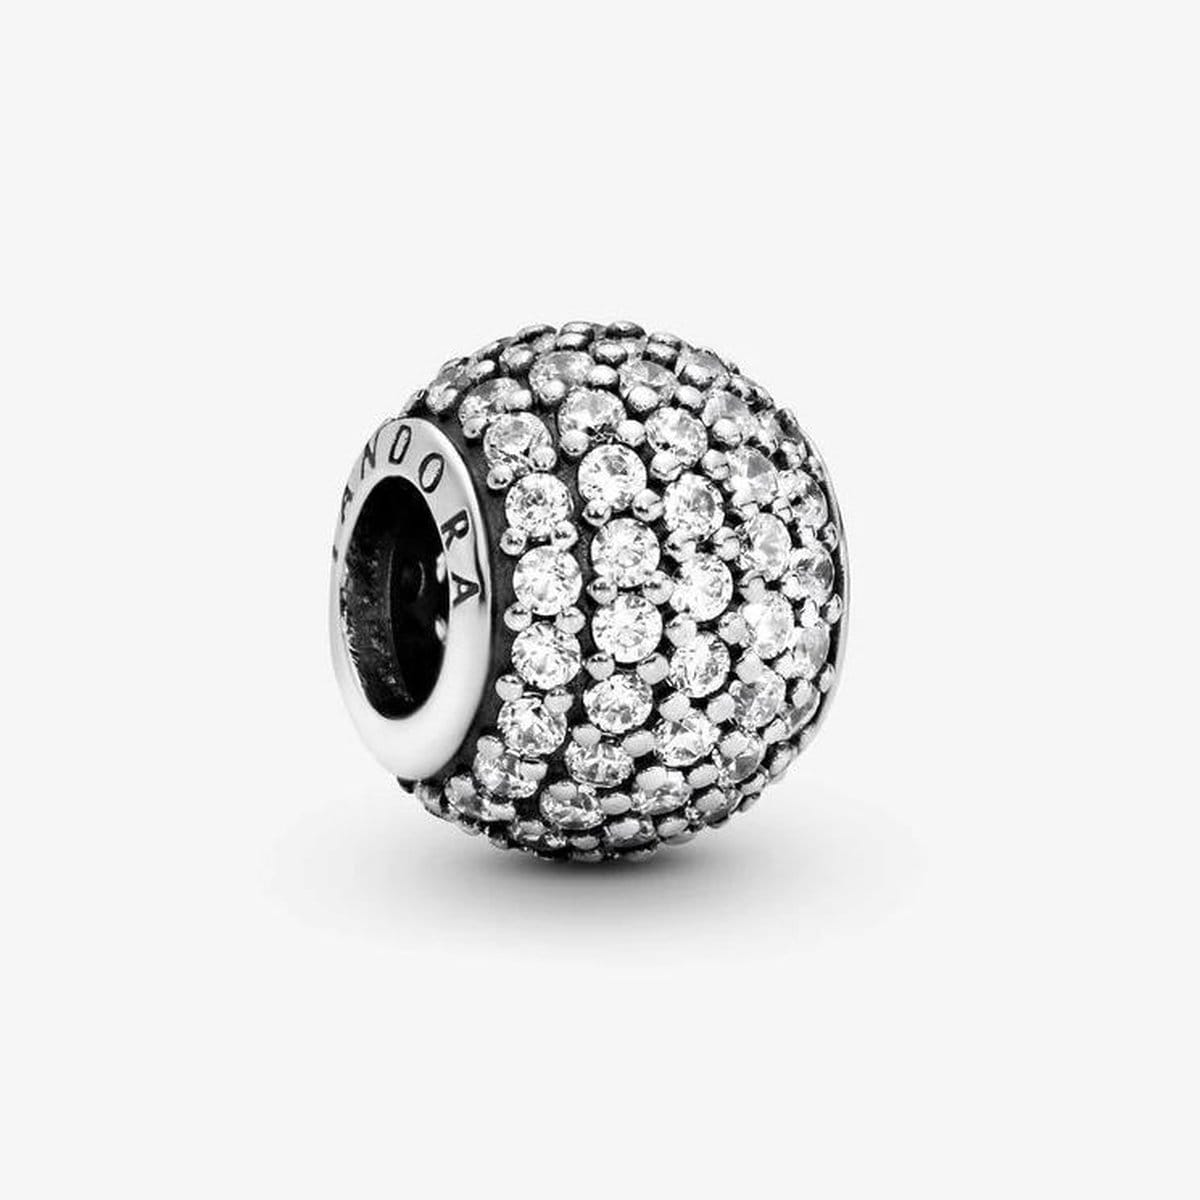 Clear Pave Lights Clear Cubic Zirconia Charm - 791051CZ-Pandora-Renee Taylor Gallery